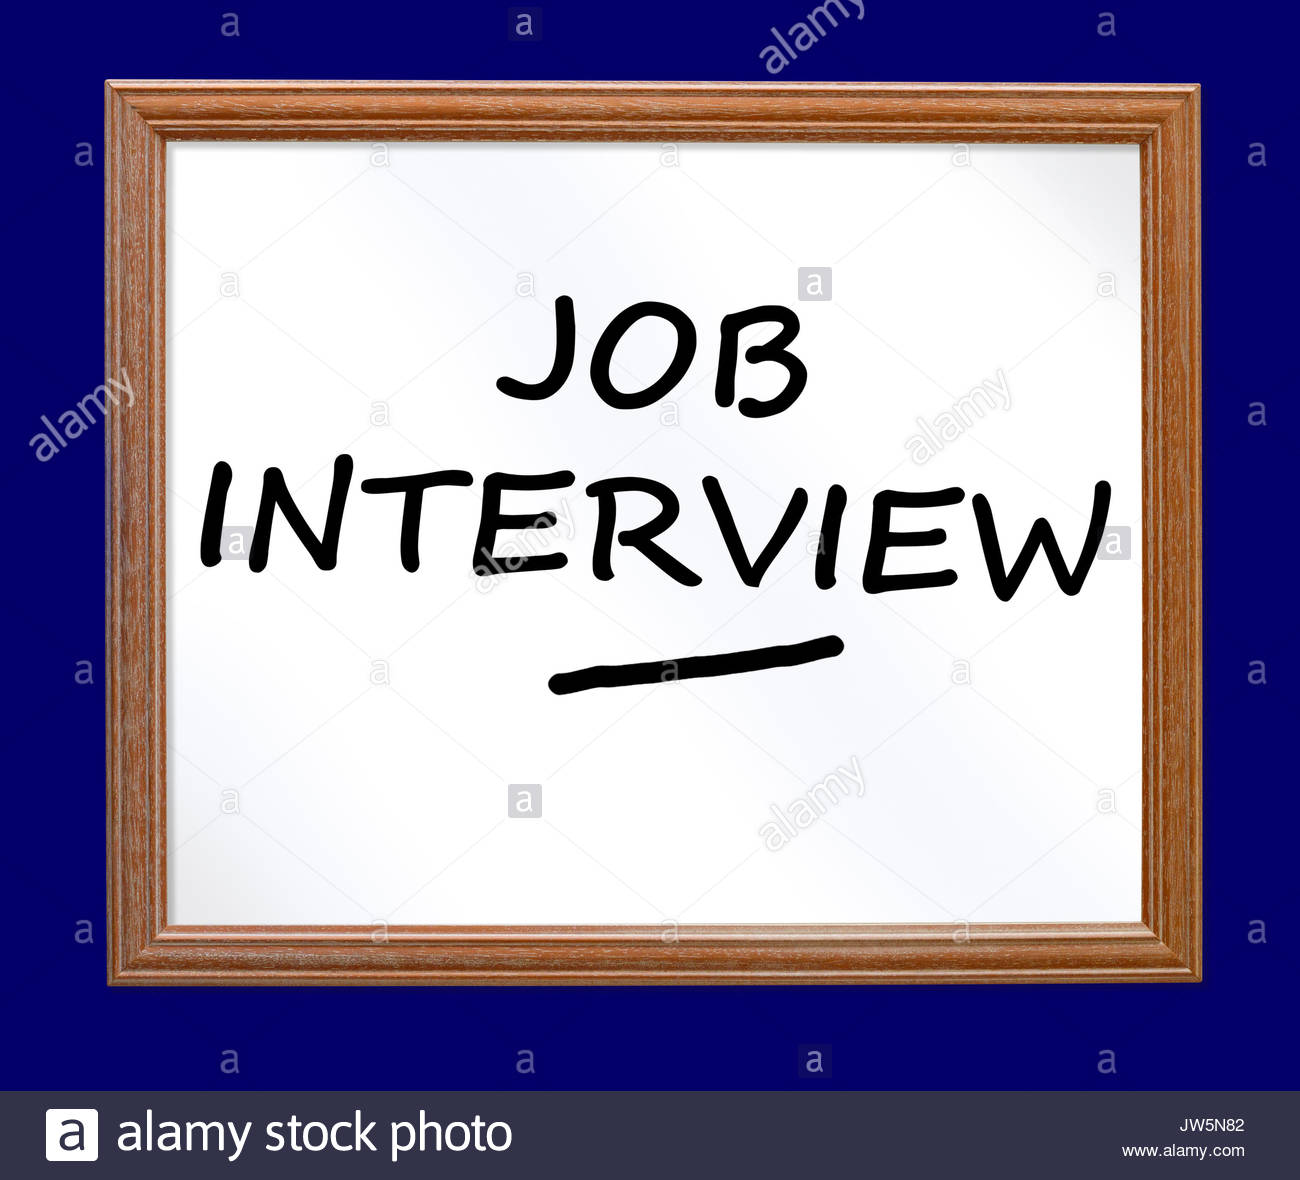 Job Interview written on a whiteboard, Blandford, Dorset, England, UK - Stock Image